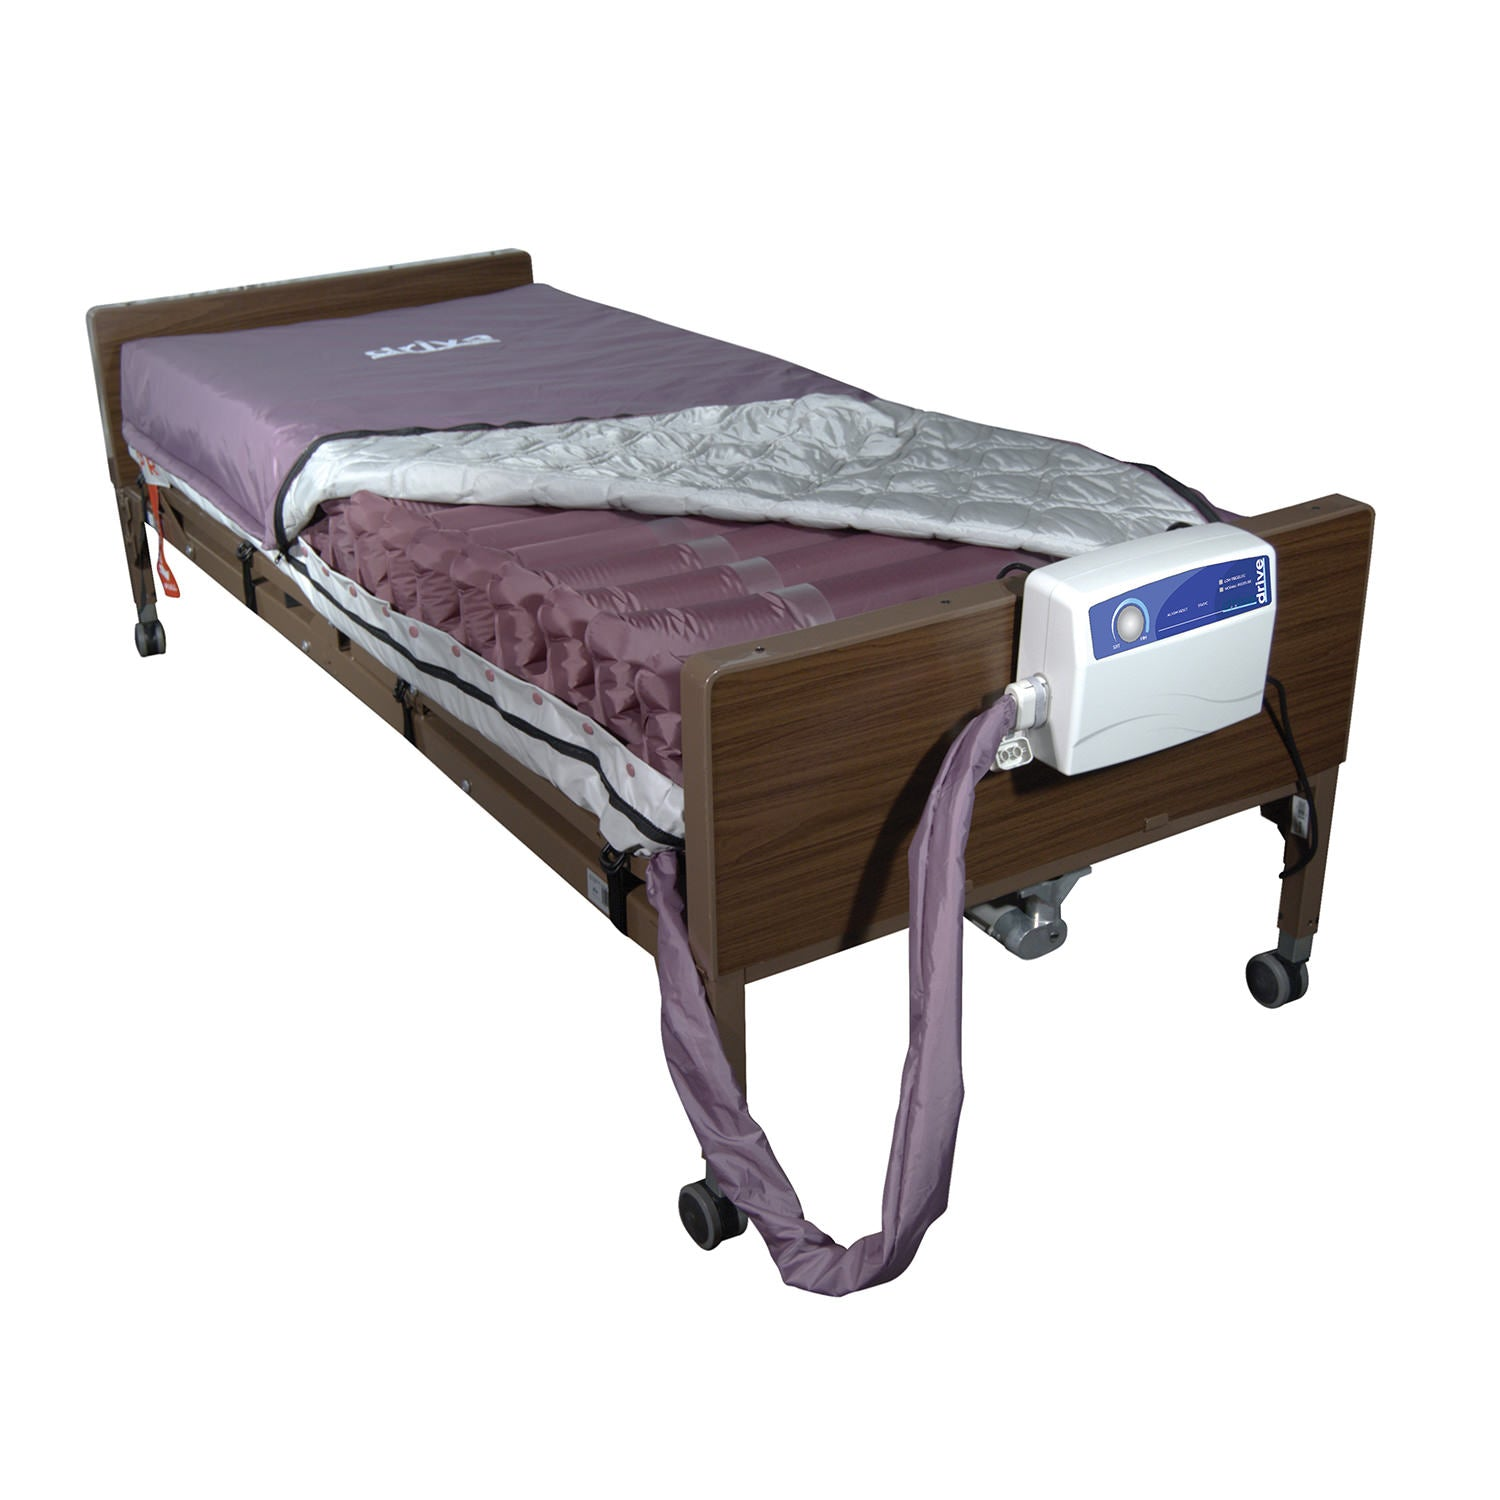 Med Air Alternating Pressure Mattress Replacement System with Low Air Loss Mattress